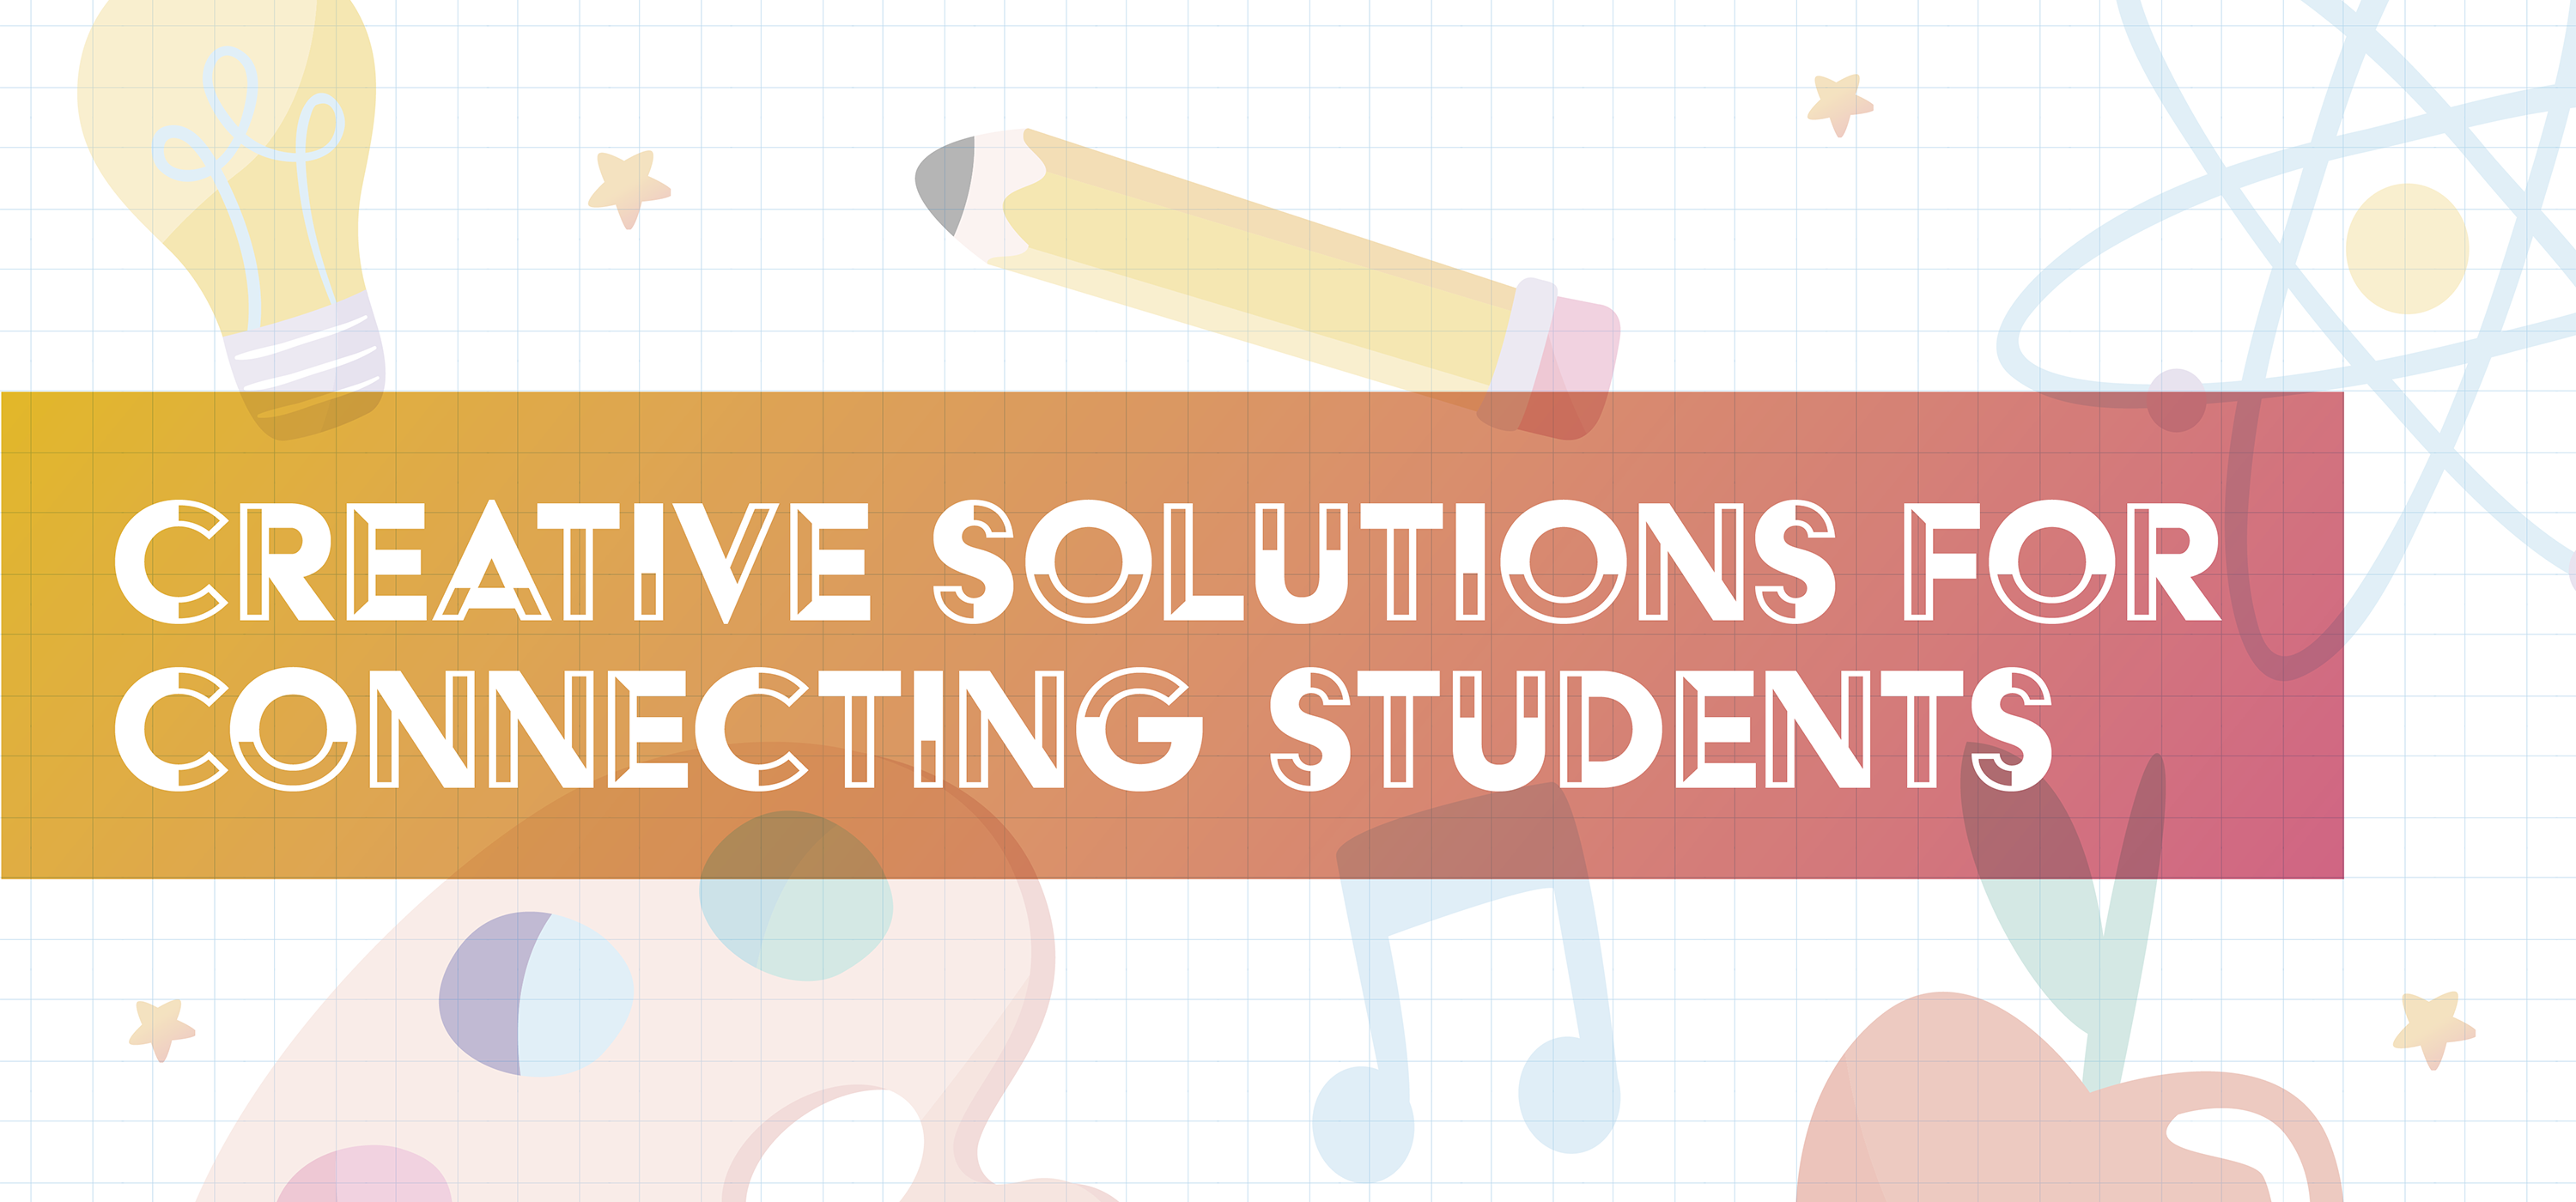 ConnectingStudents_ArticleHeader